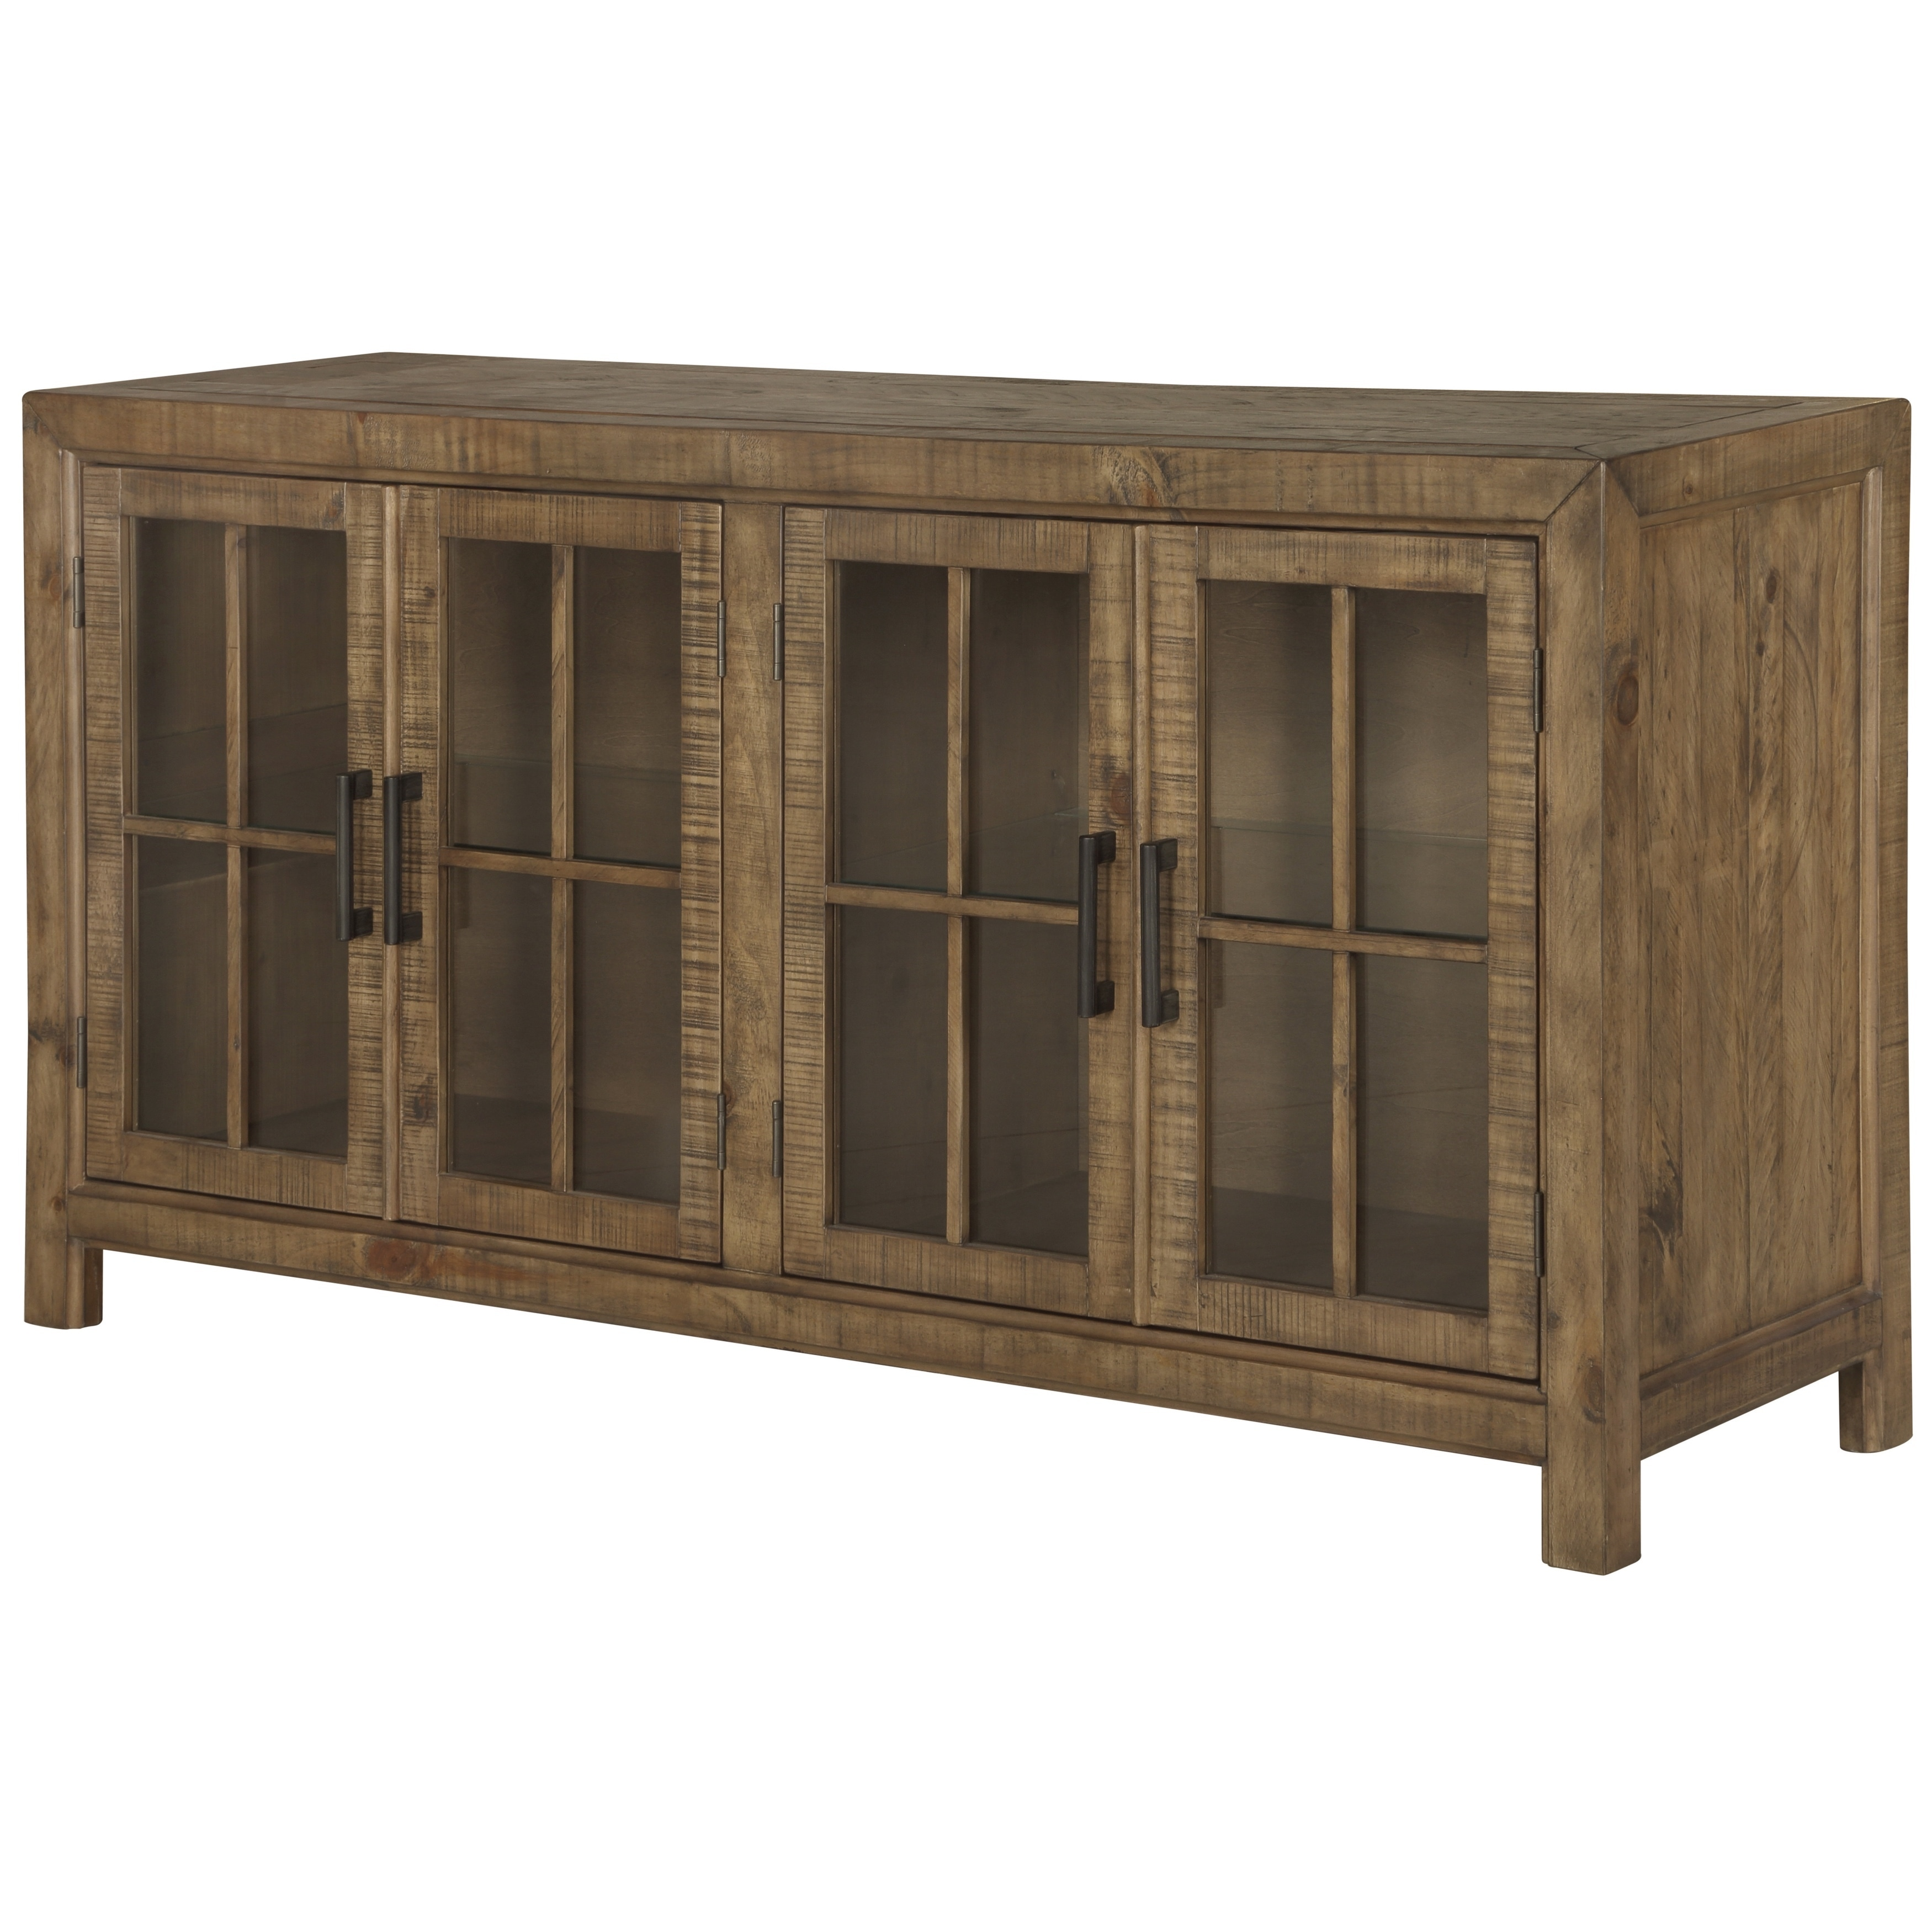 Magnussen Home Furnishings Willoughby Wood Buffet Curio C...